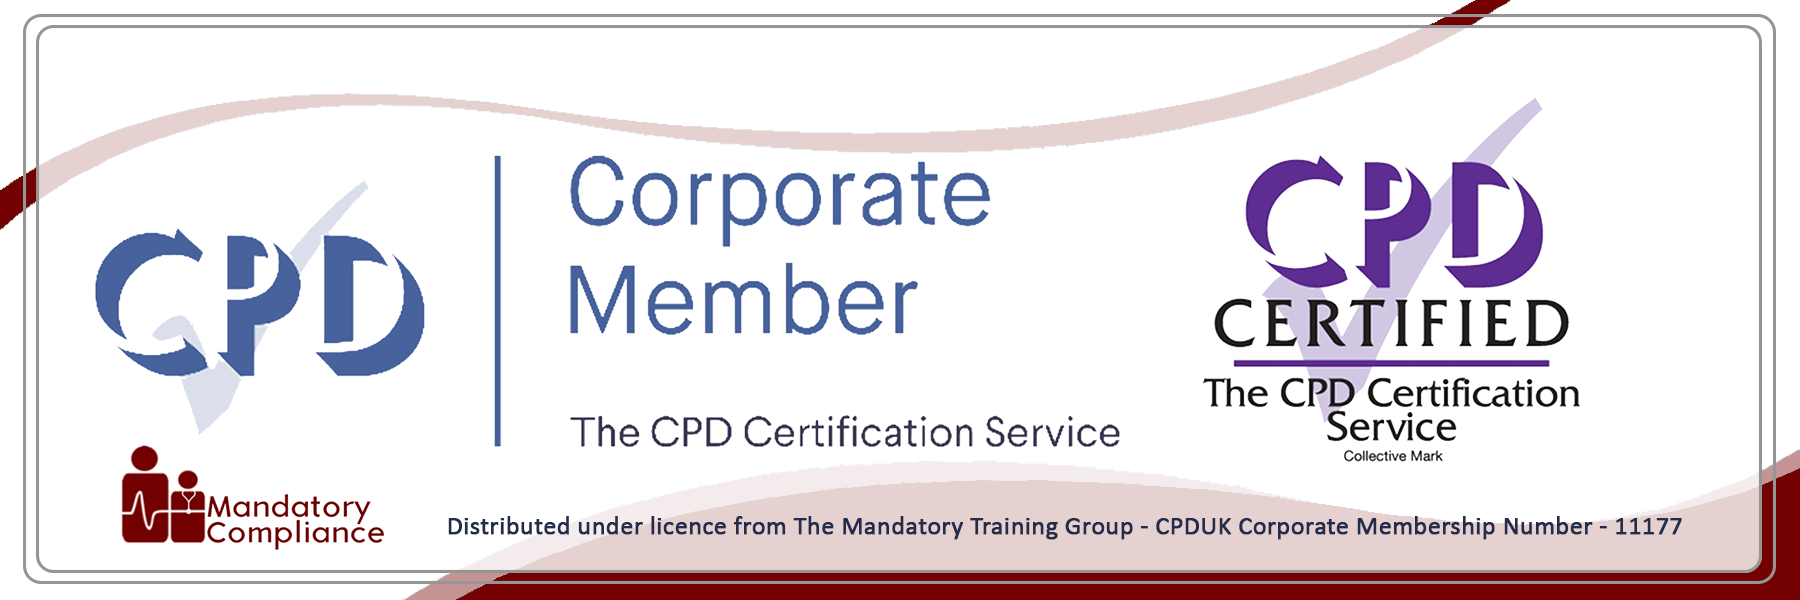 Generation Gaps Training - Online Training Course - CPD Accredited - Mandatory Compliance UK -